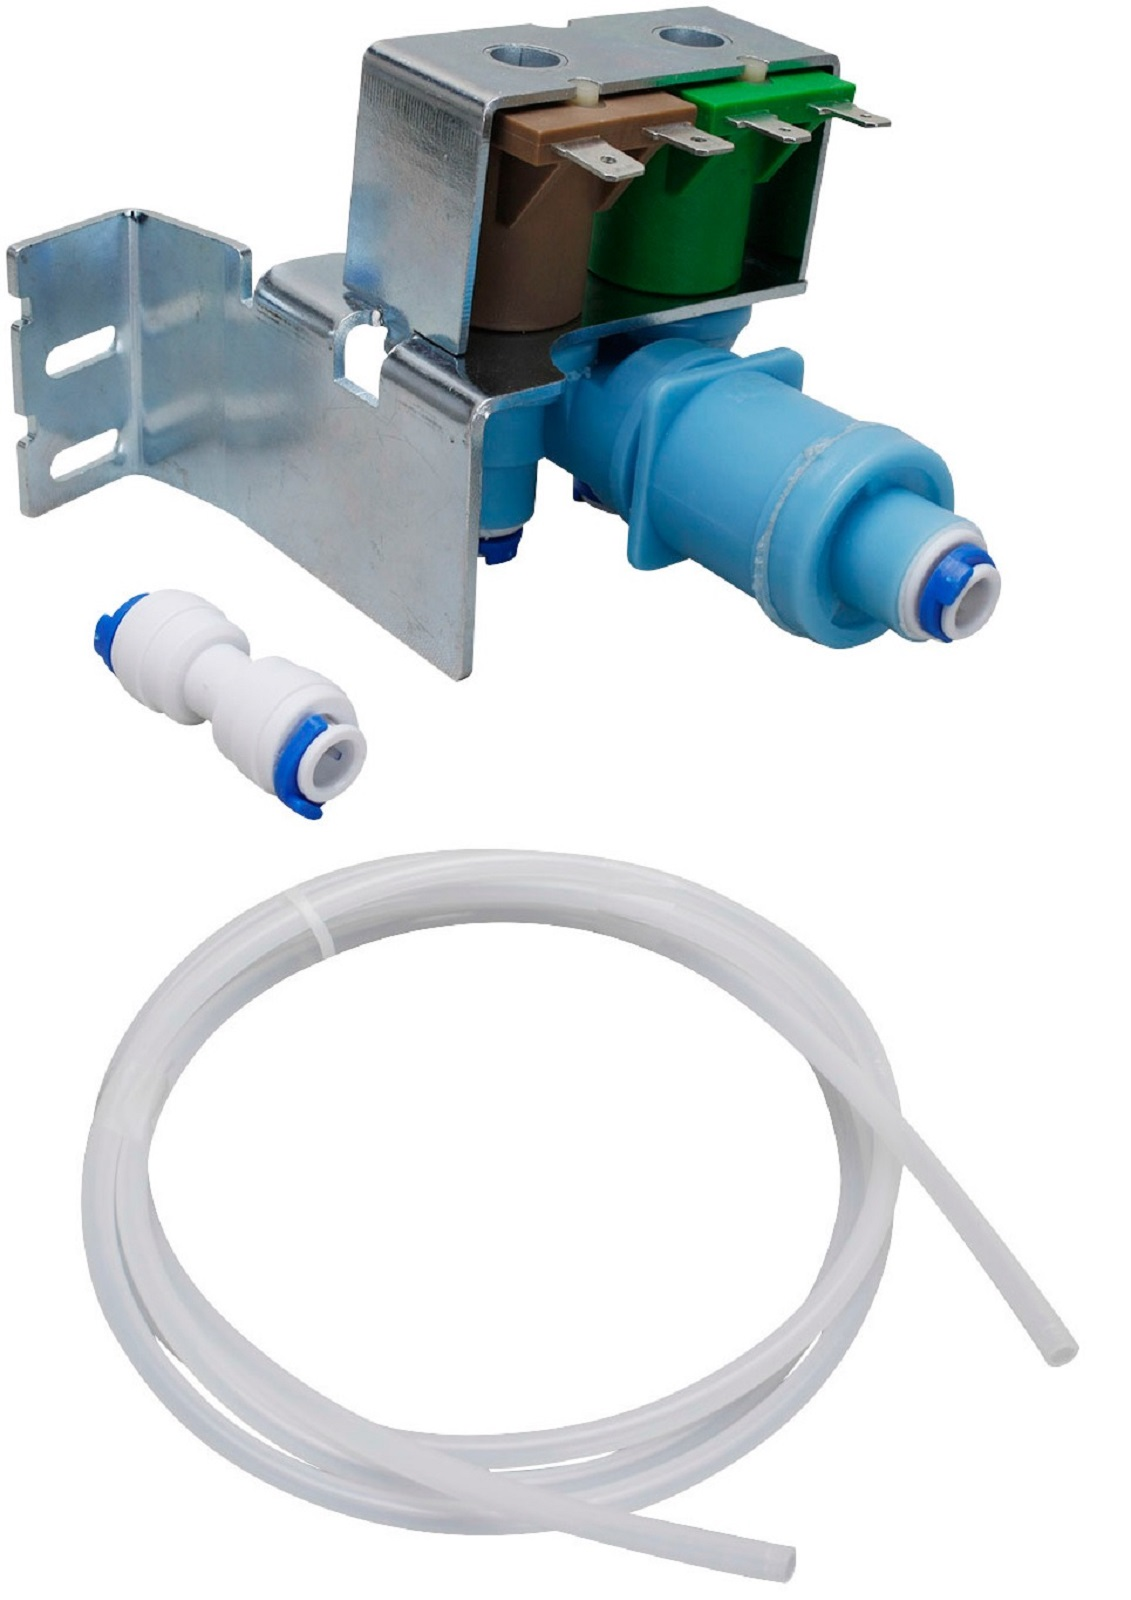 Refrigerator Water Valve Kit for Whirlpool, Sears, Kenmore, 4389177